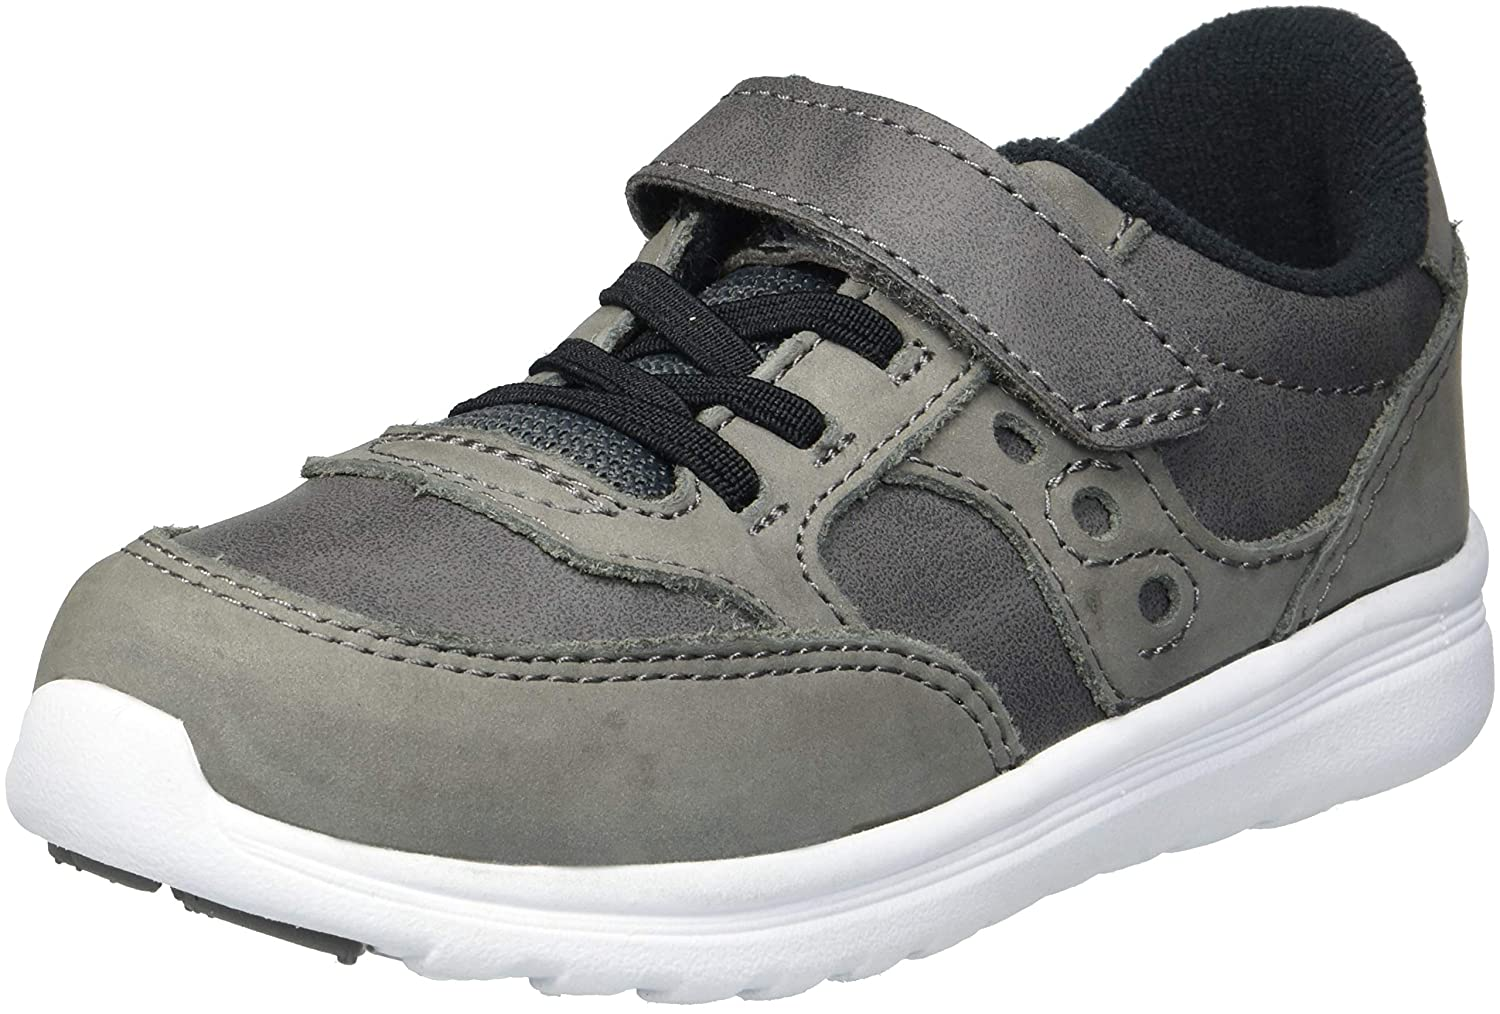 Saucony ユニセックスキッズ B078FQN76S 6.5 Wide US Toddler|グレー グレー 6.5 Wide US Toddler